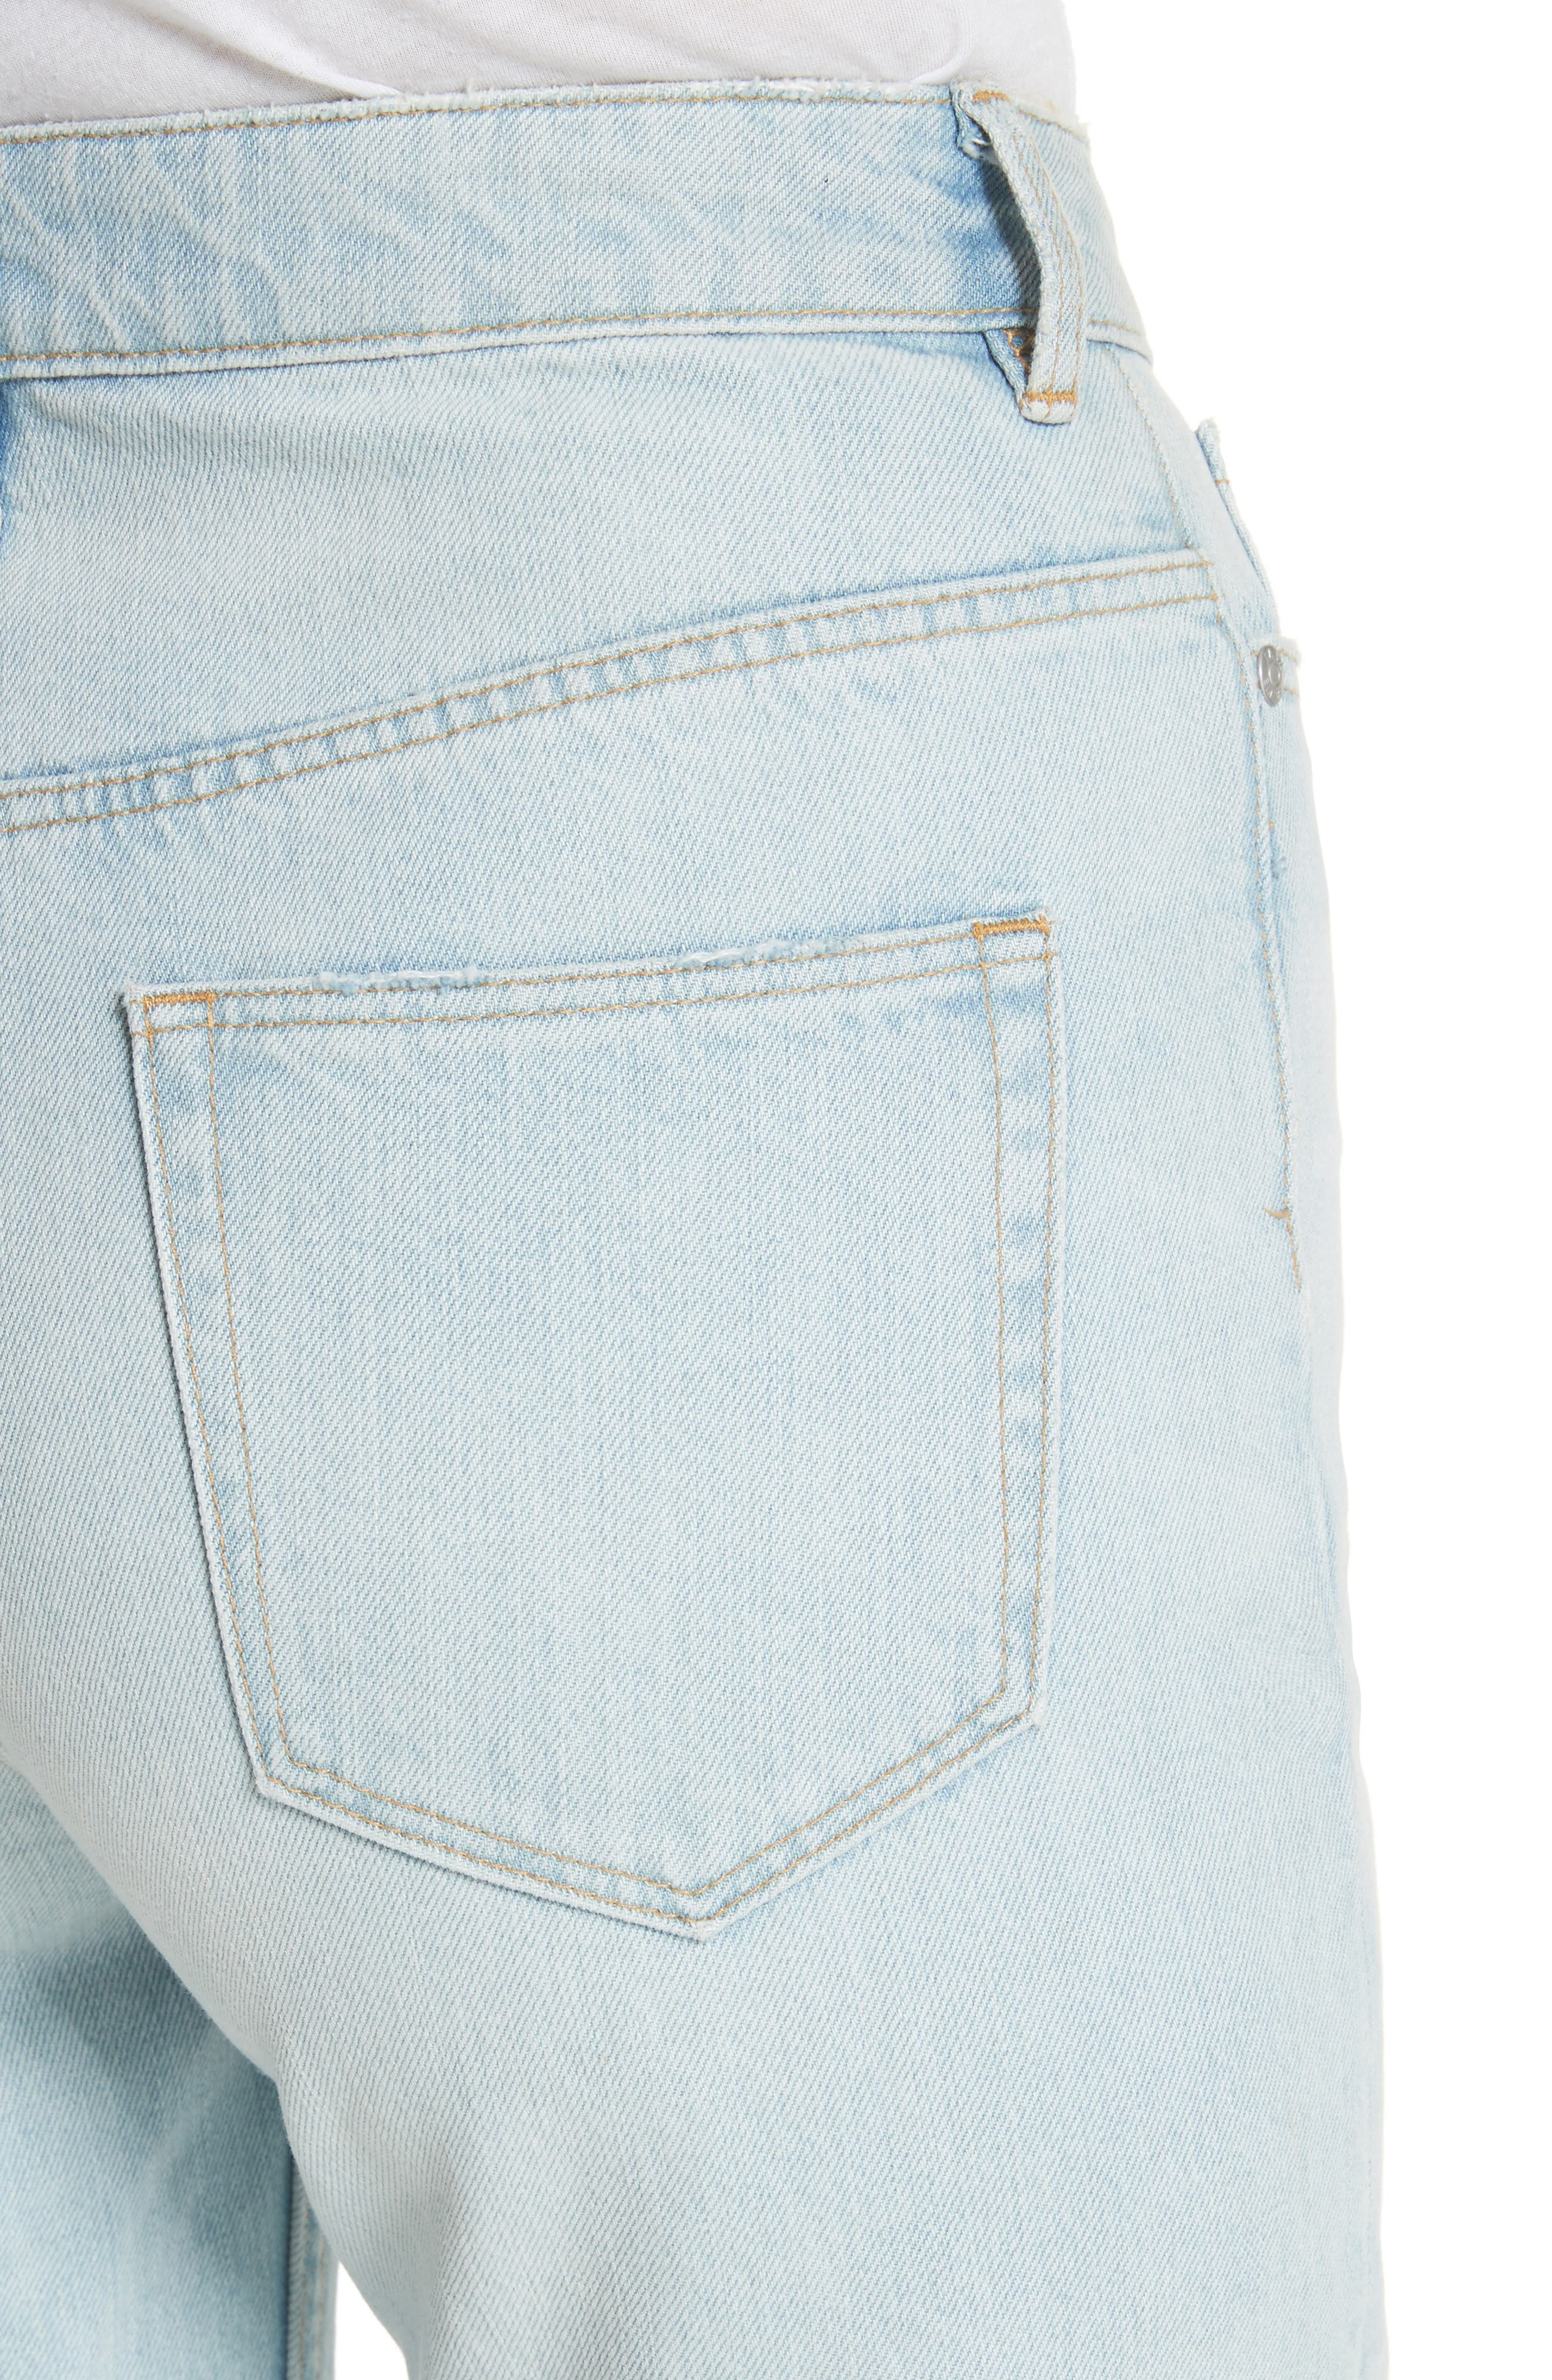 Tapered Jeans,                             Alternate thumbnail 4, color,                             467